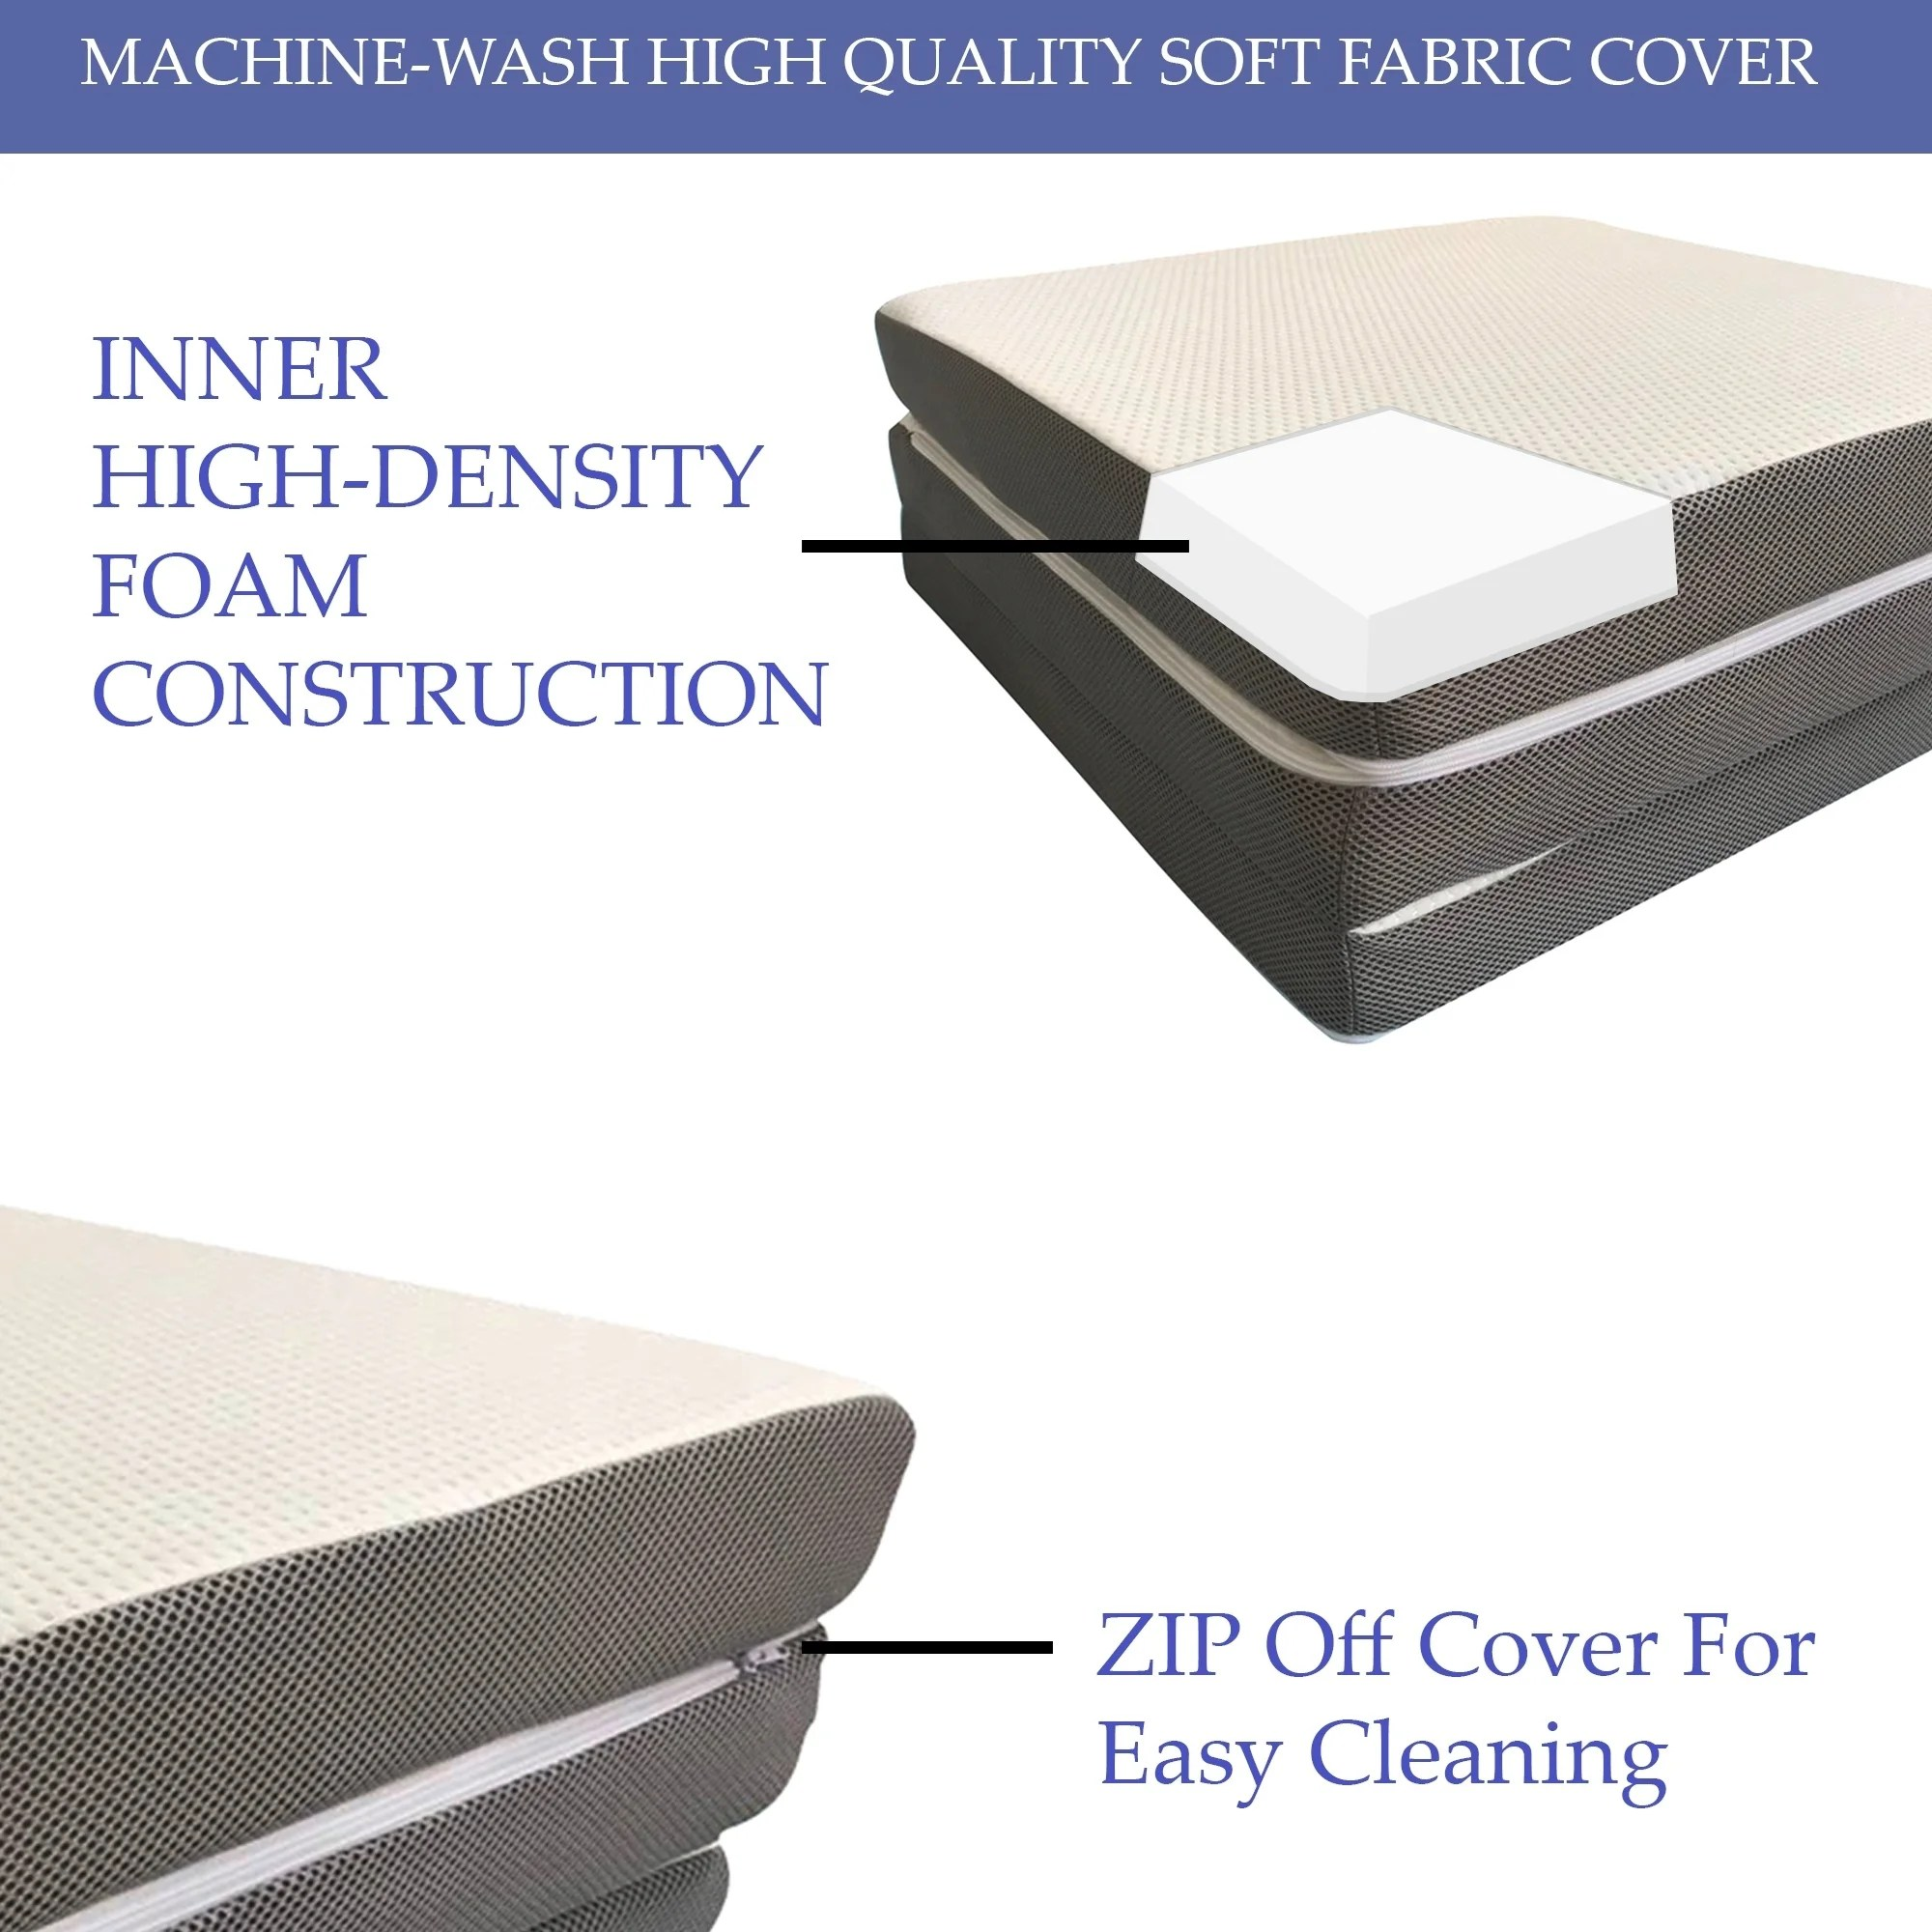 Tri Fold Mattress Memory Foam Guest Pad Camping 4 Inch Topper Support Cover Bed Mattress Pads Feather Beds Bedding